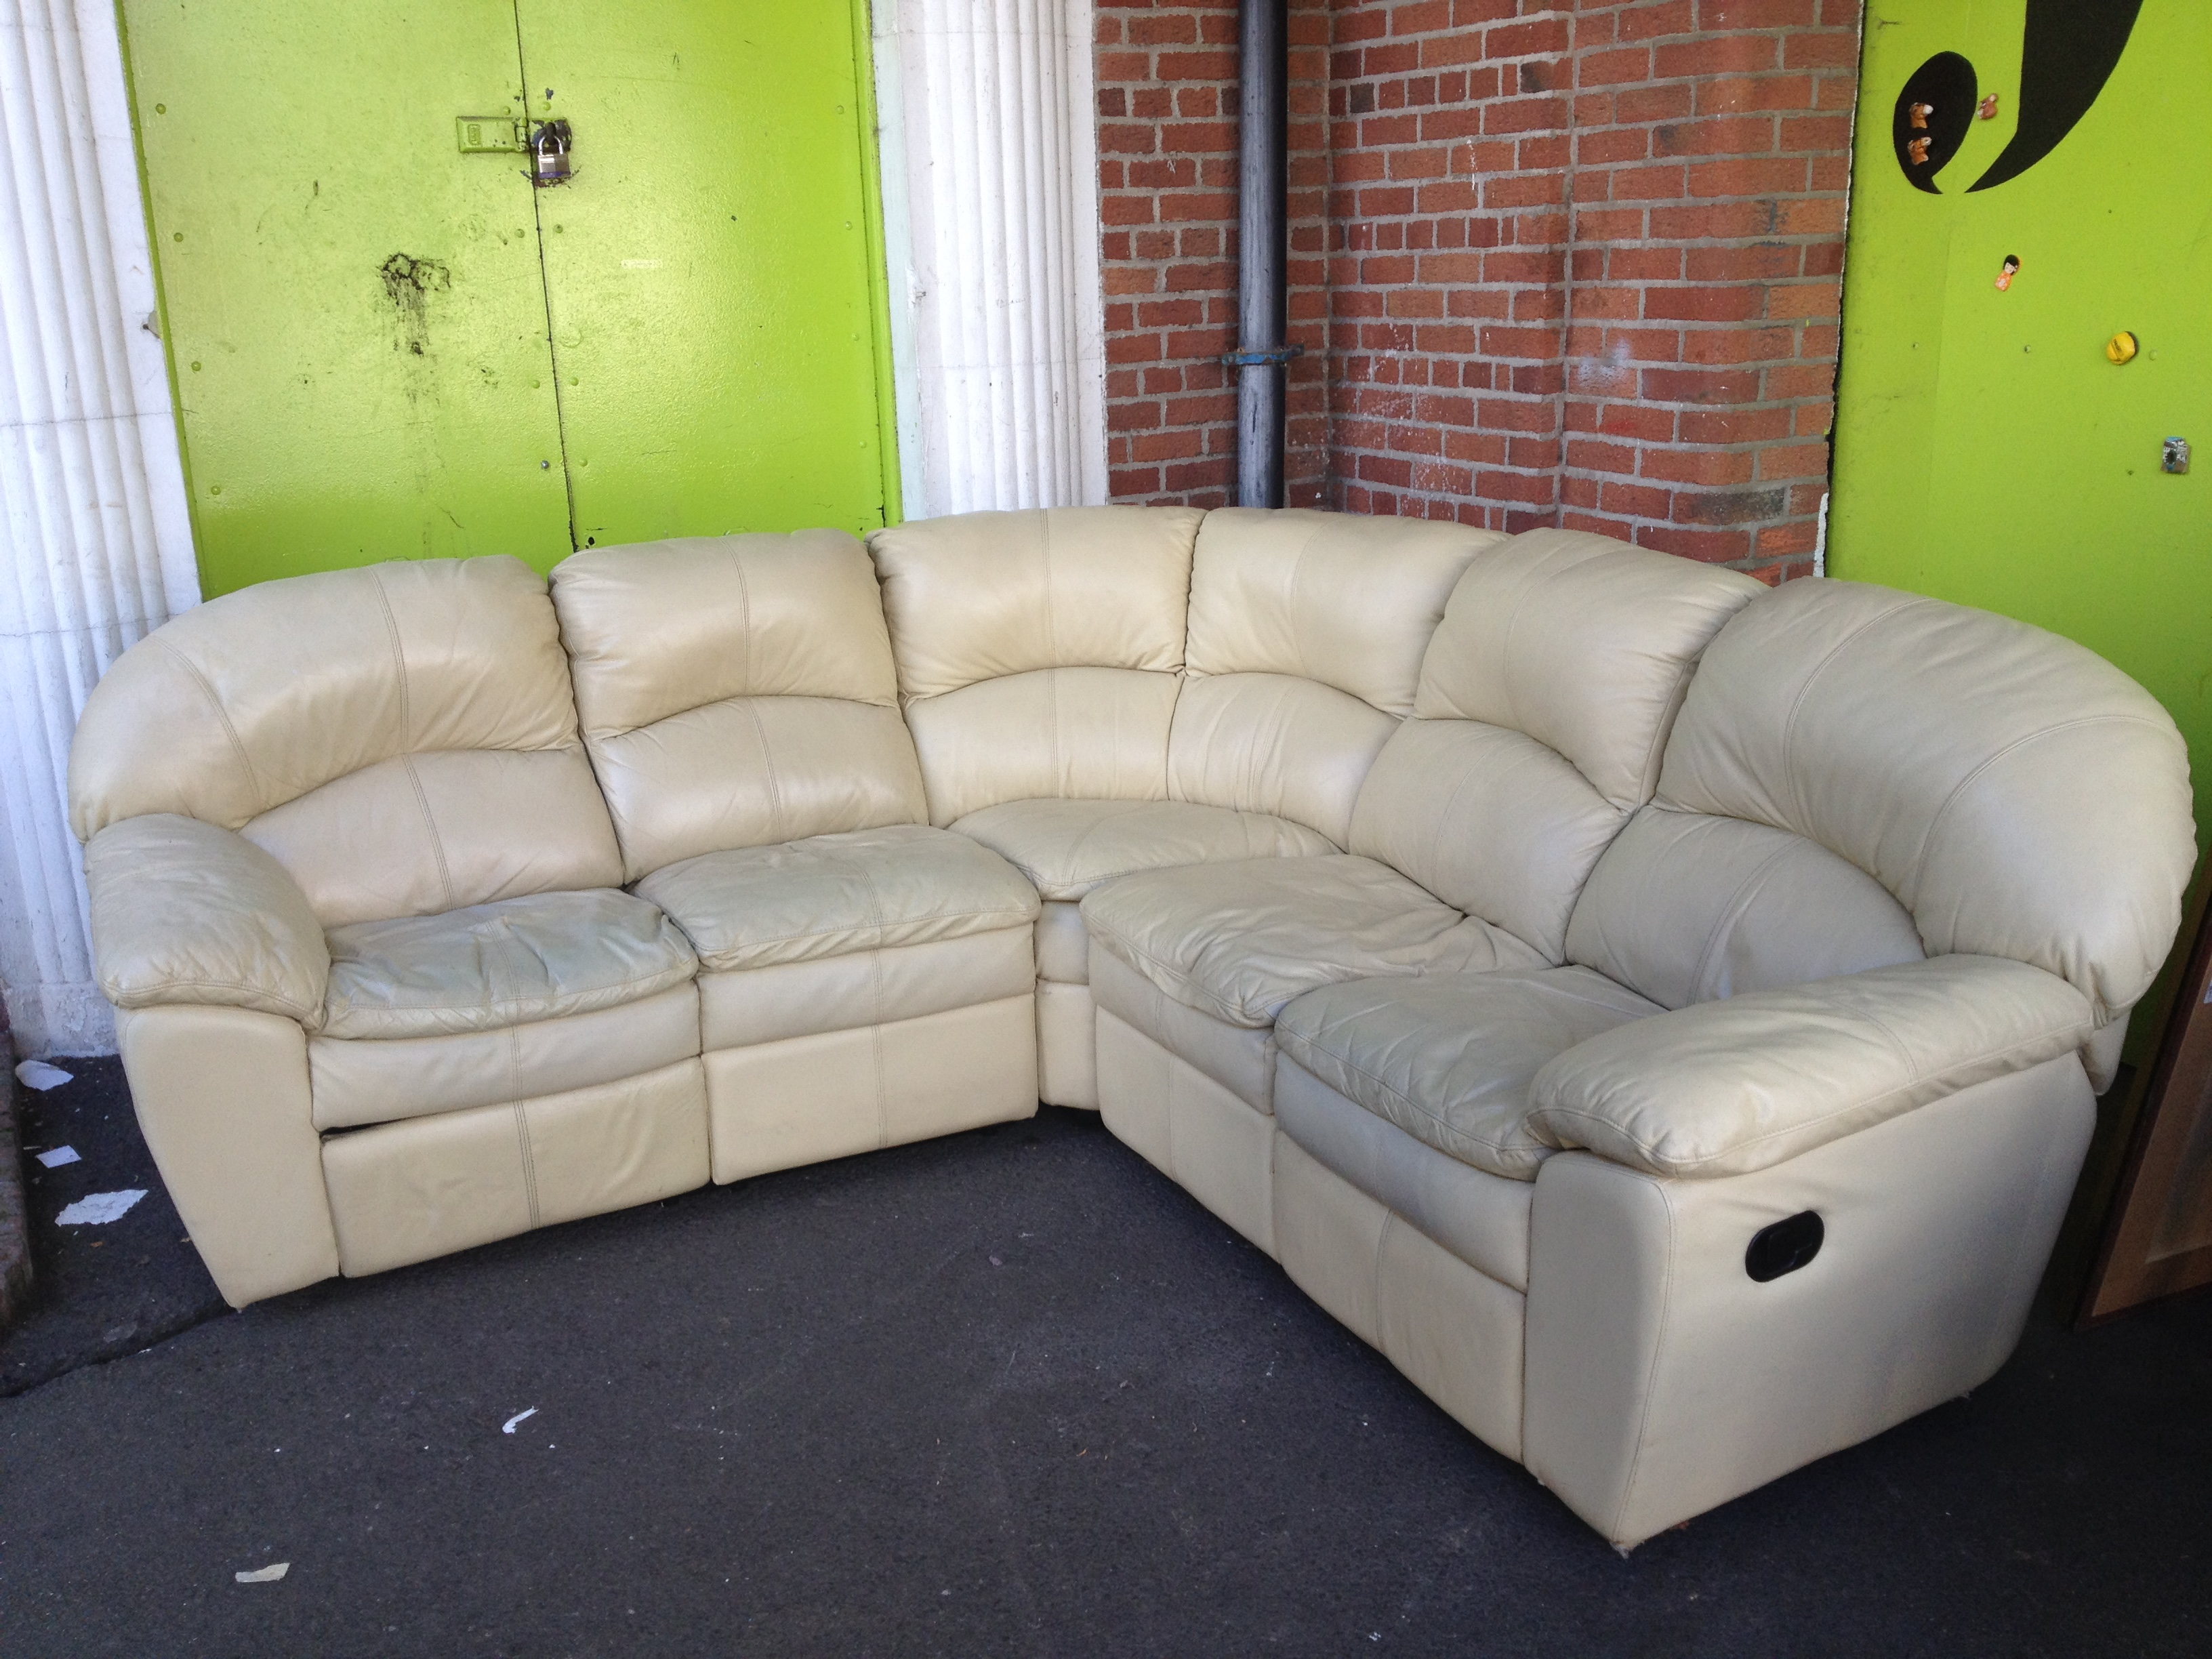 2nd hand sofas for sale buy cheap sofas and couches in dublin. Black Bedroom Furniture Sets. Home Design Ideas